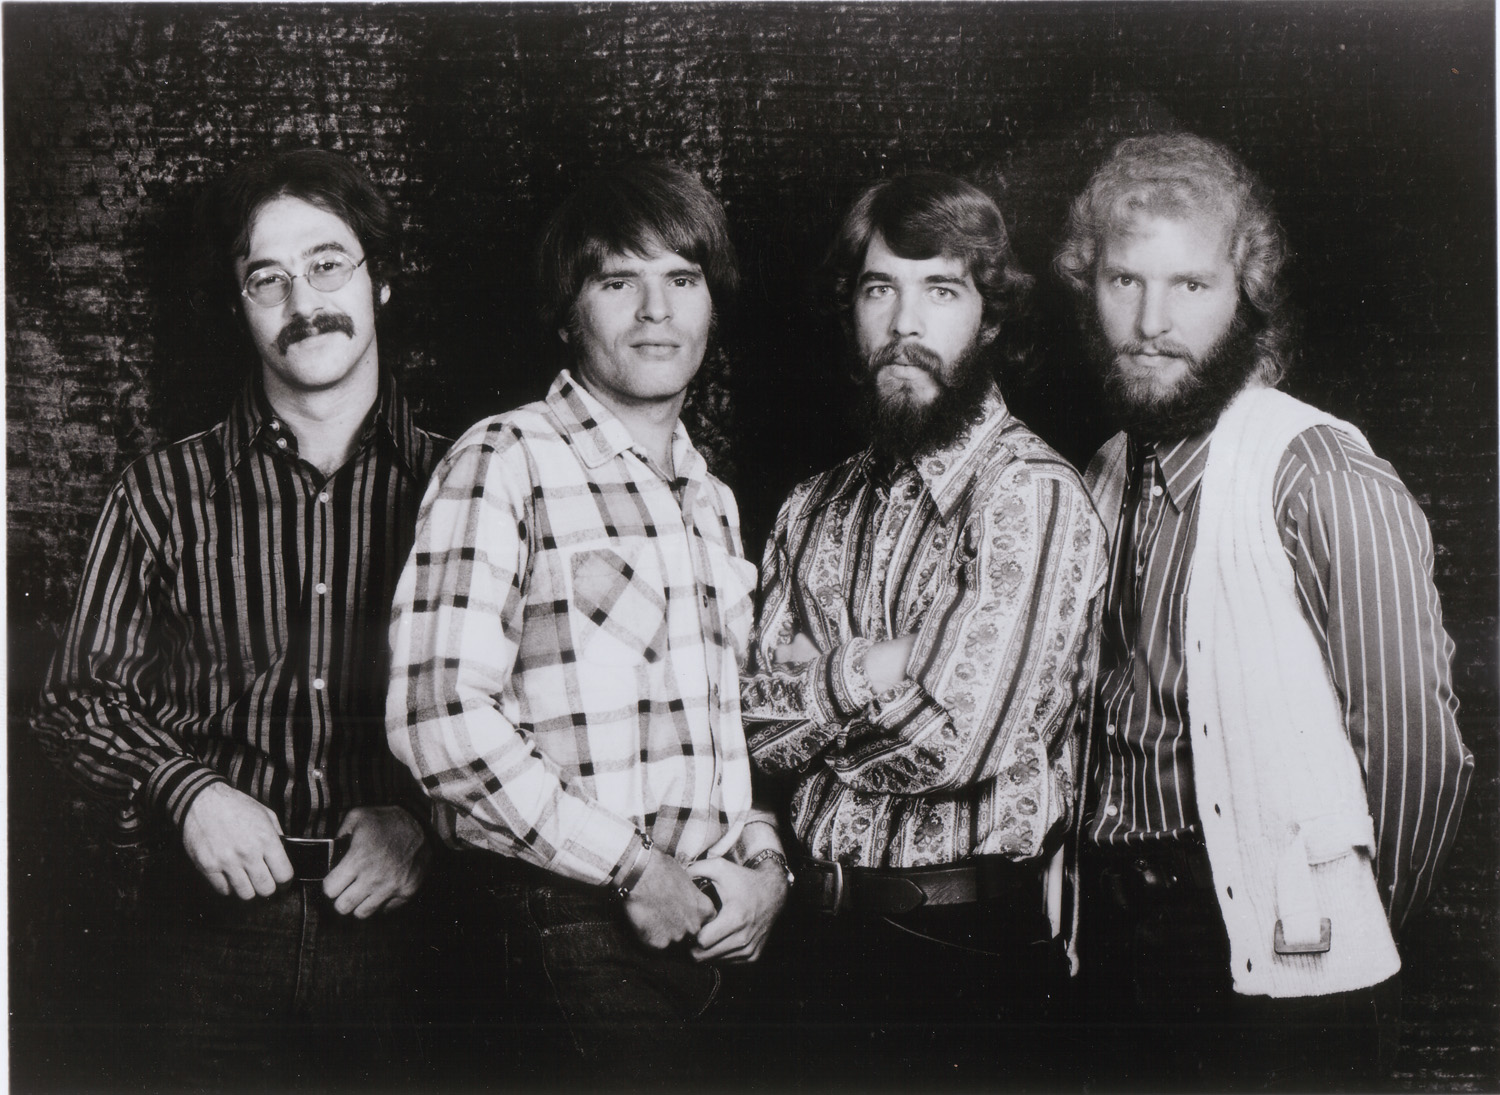 creedence_clearwater_revival_704382_35922